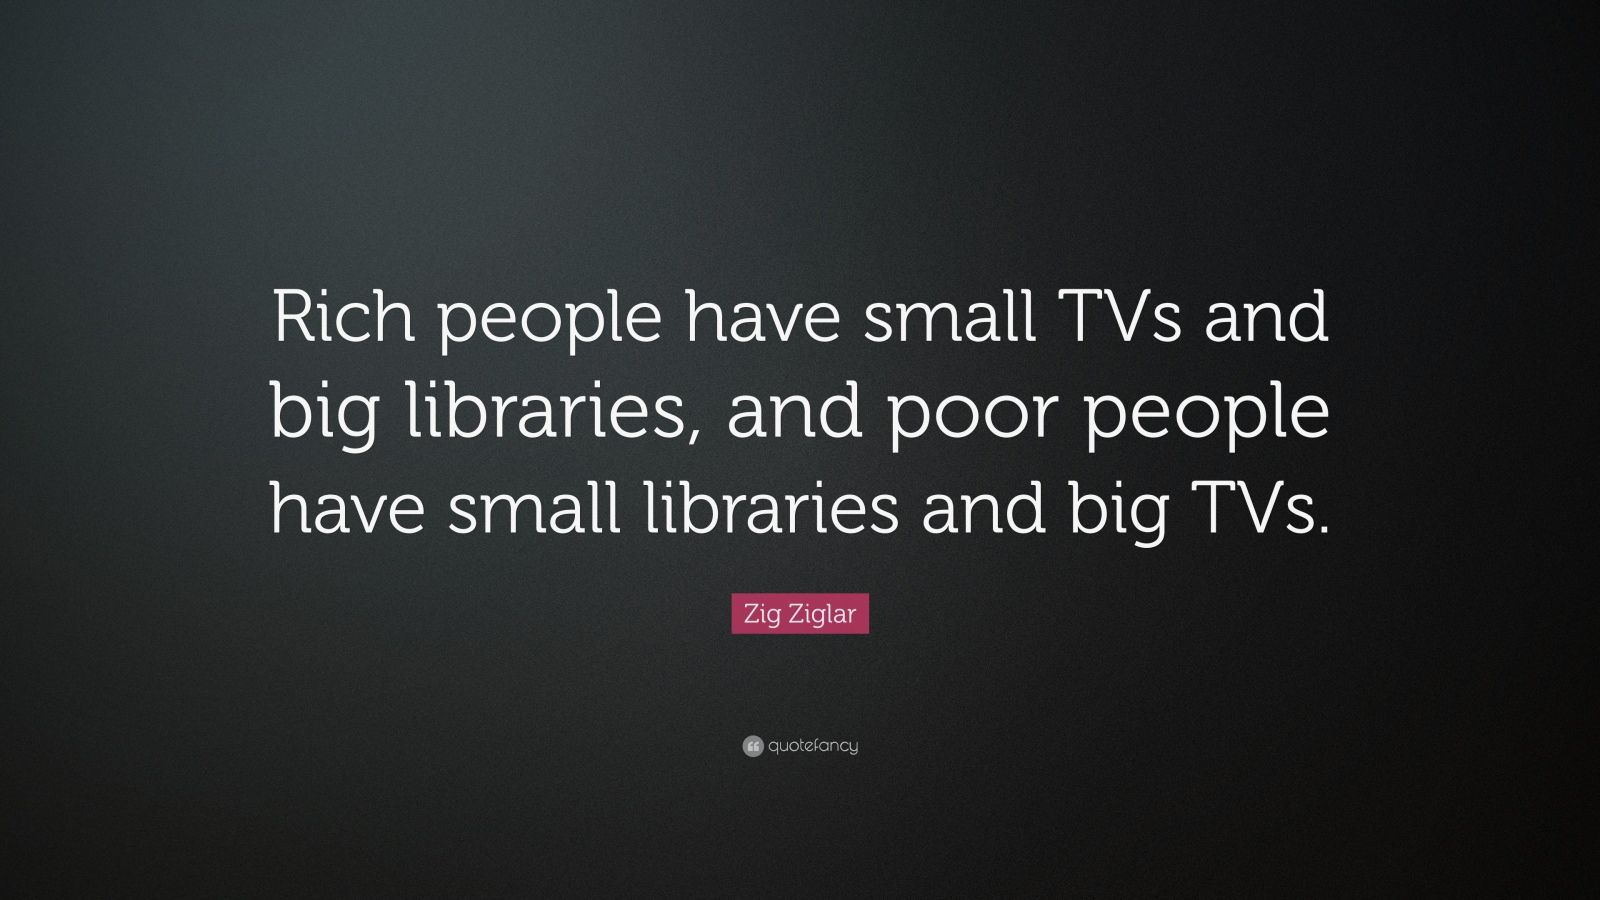 Sons Of Anarchy Quote Wallpaper Zig Ziglar Quote Rich People Have Small Tvs And Big